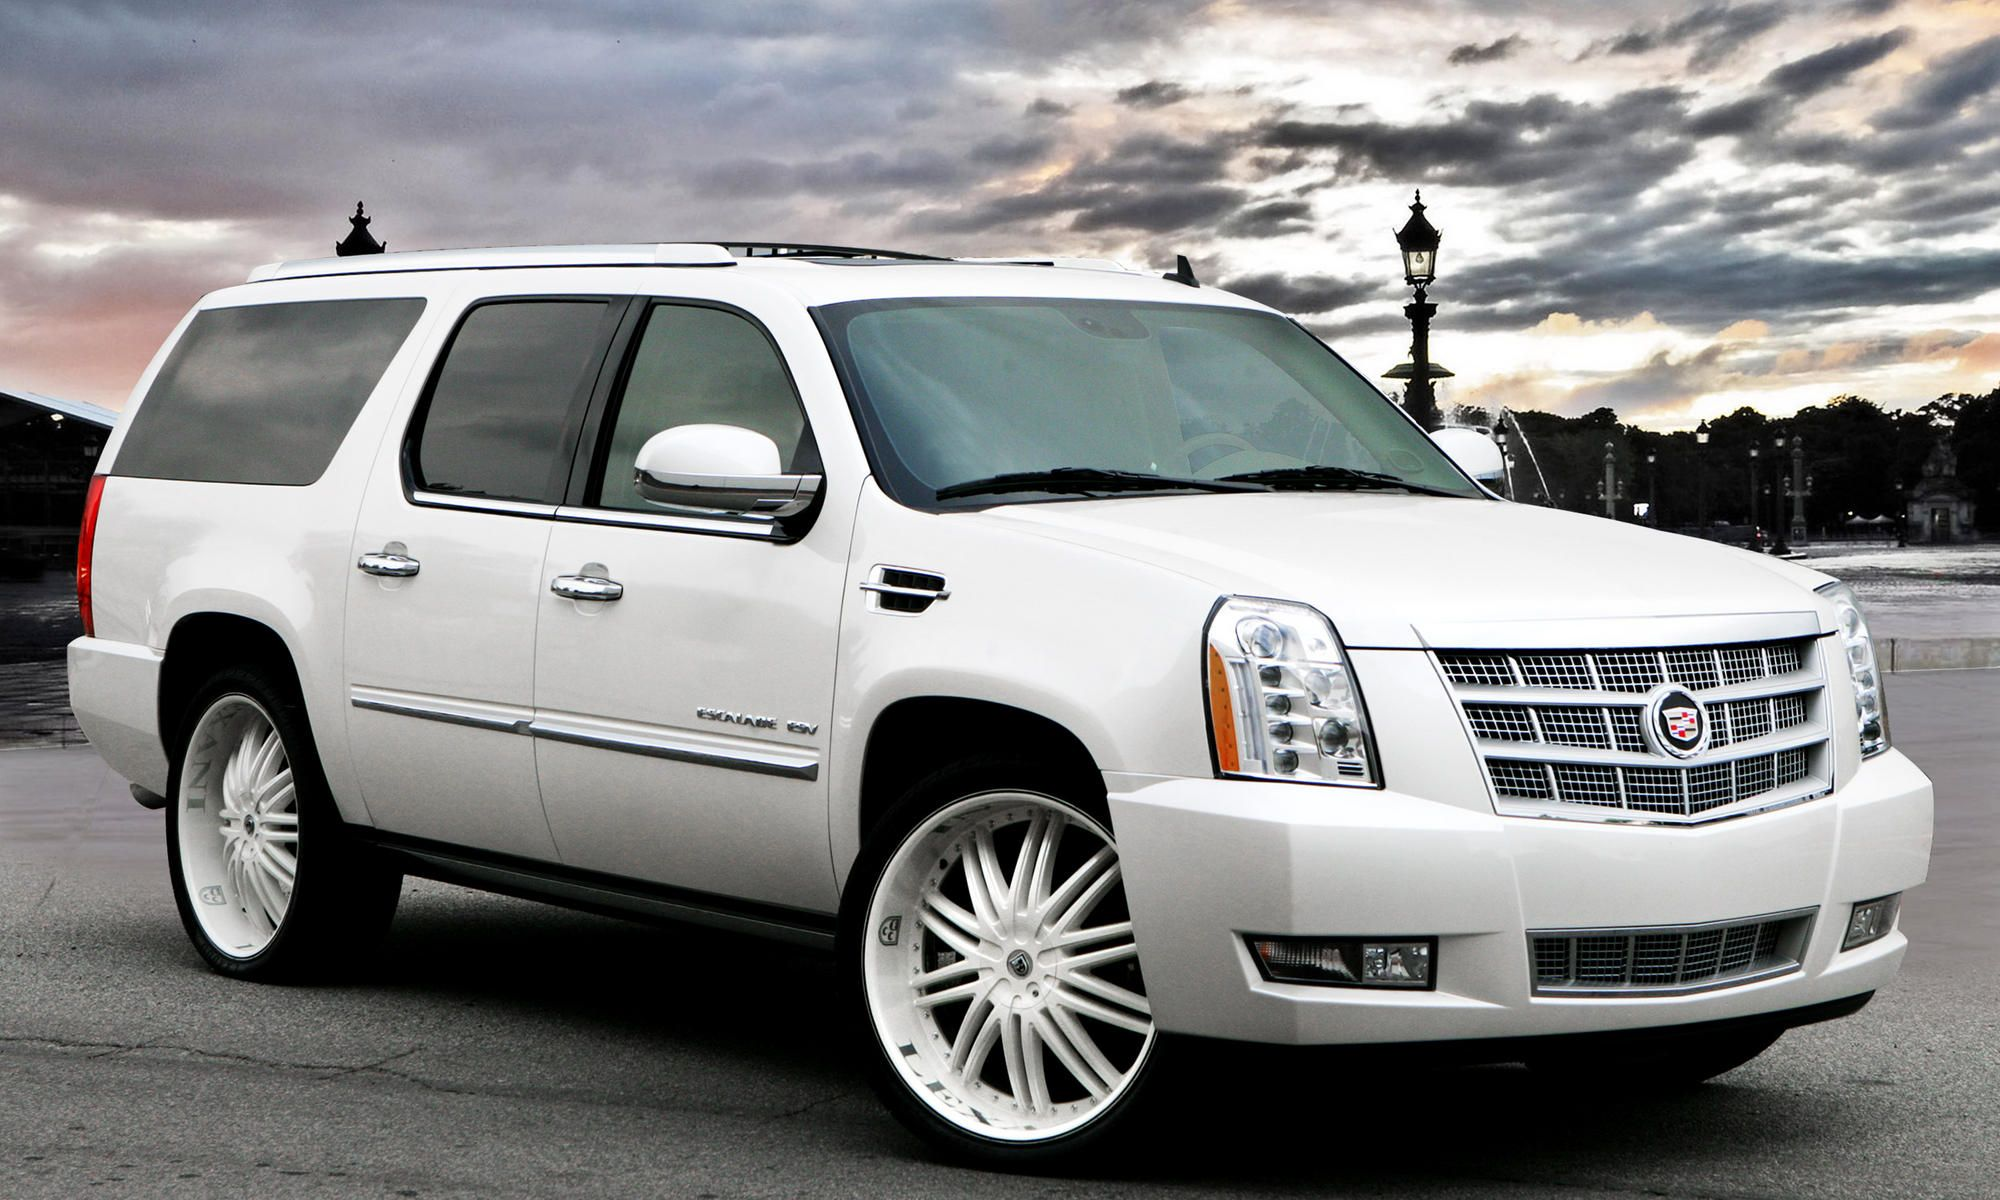 lexani wheels the leader in custom luxury wheels 2011 white cadillac escalade with custom white lx 10 wheels [ 2000 x 1200 Pixel ]